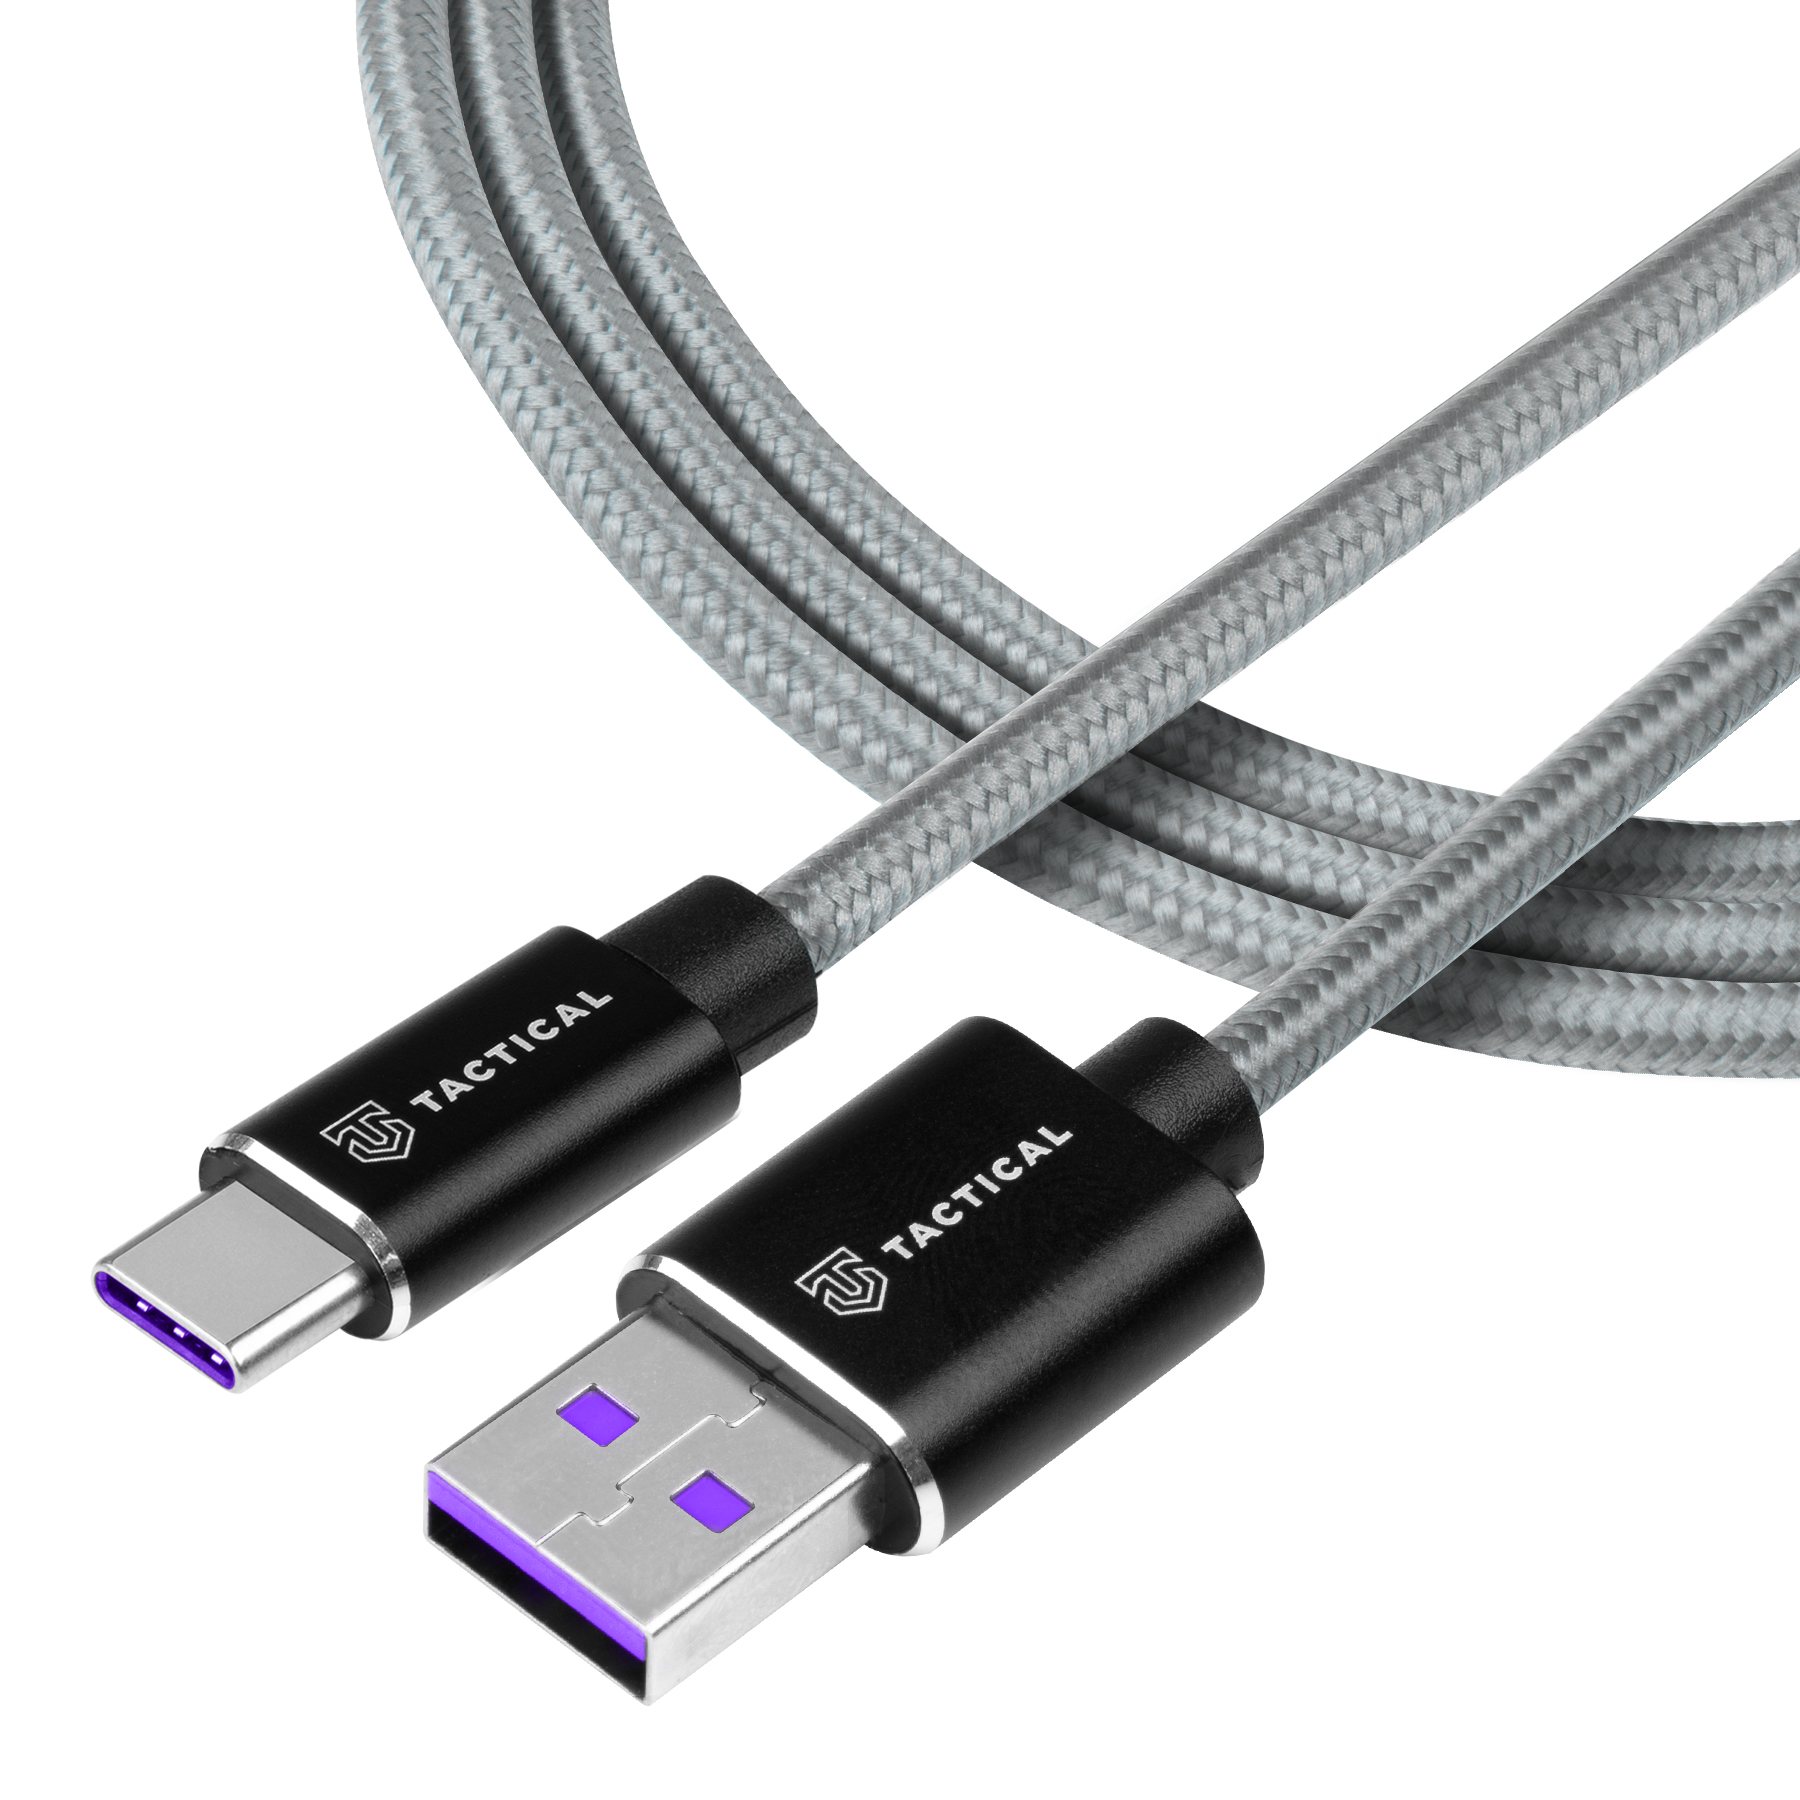 Tactical Fast Rope Aramid Cable USB-A/USB-C - HUAWEI SUPER CHARGE 1m Grey 8596311153228